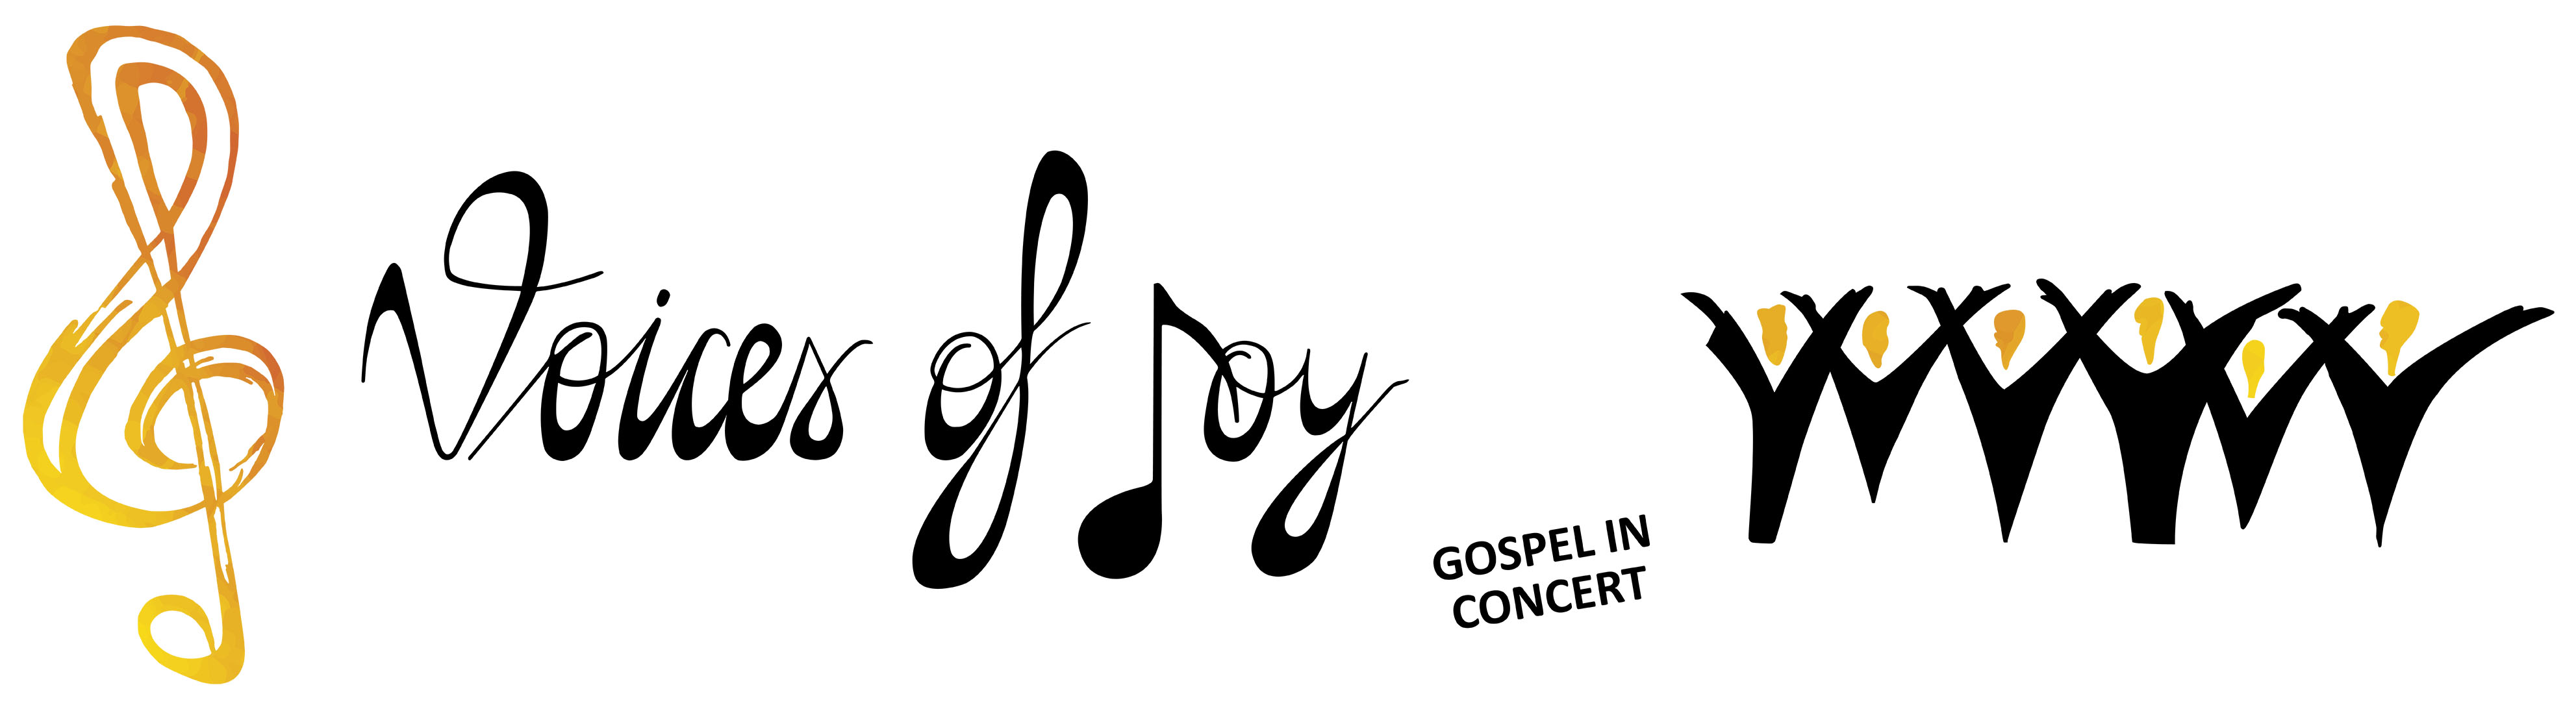 Voices of Joy